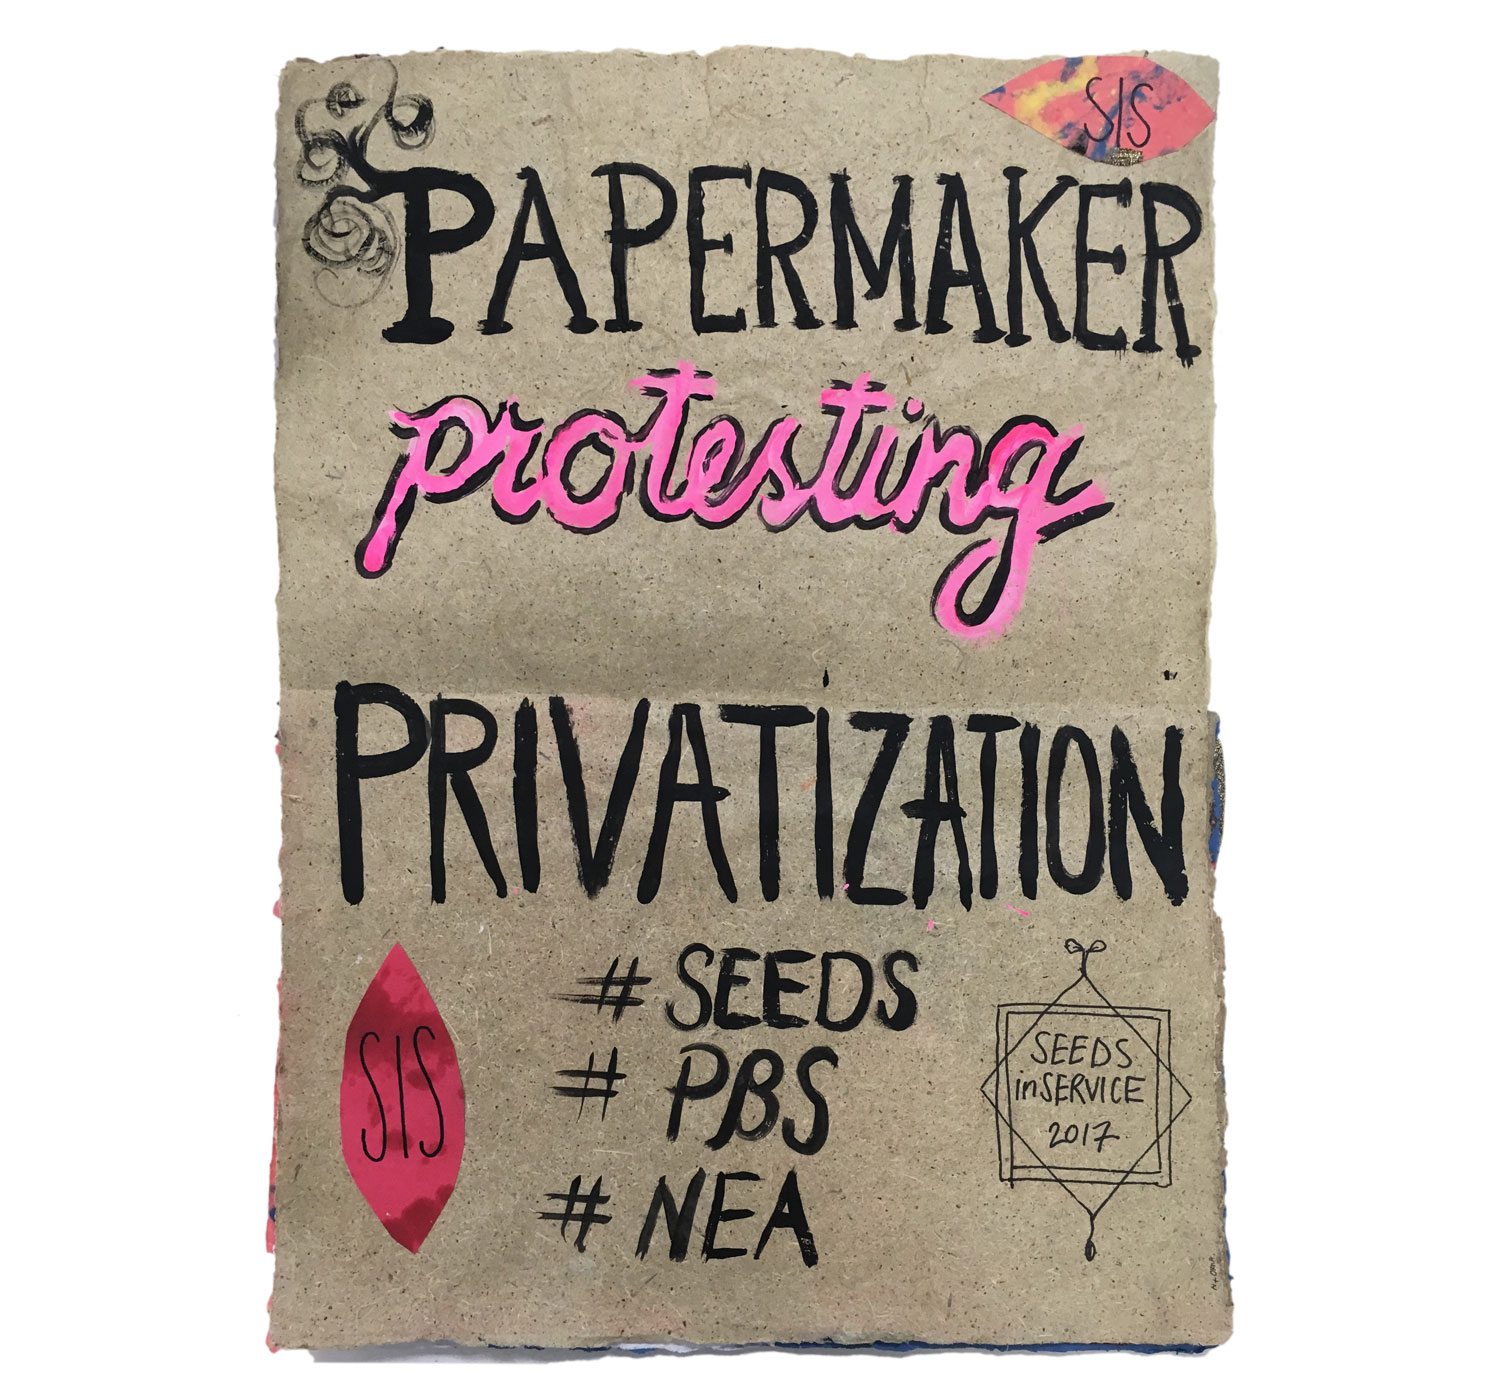 Papermaker Protesting Privatization